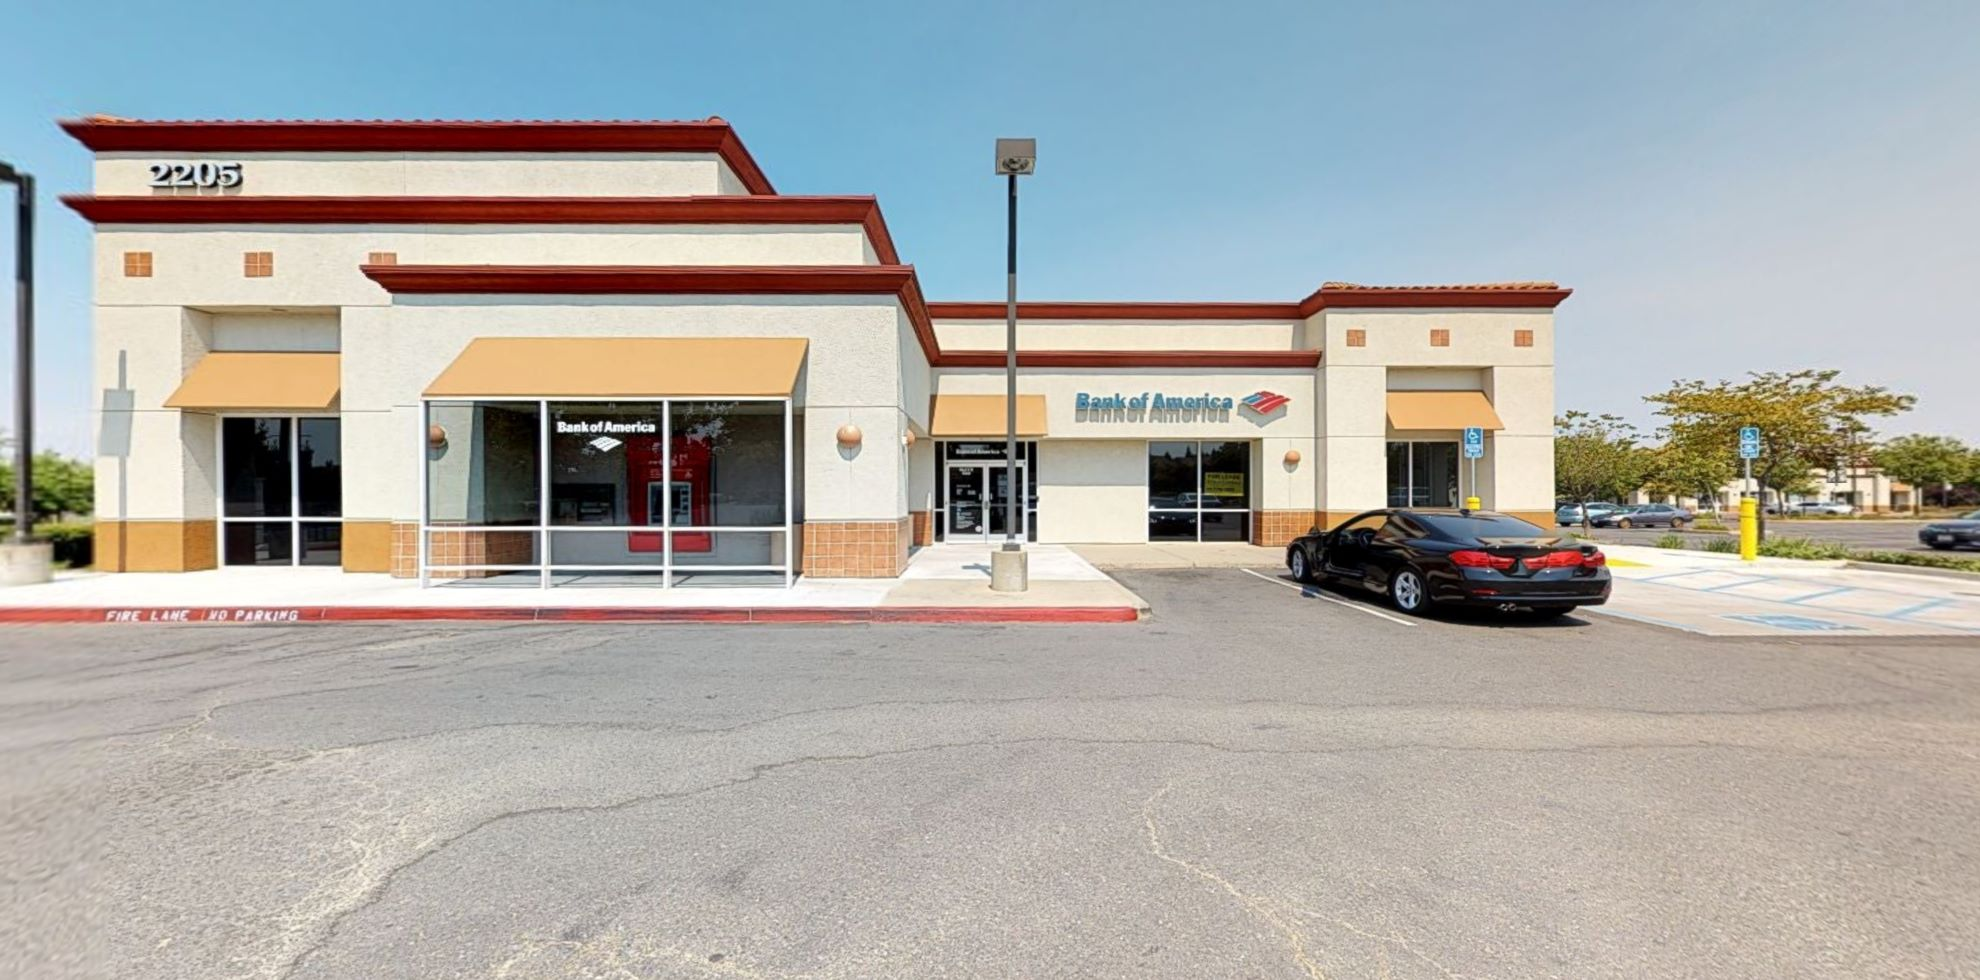 Bank of America financial center with walk-up ATM | 2205 Sunset Blvd, Rocklin, CA 95765